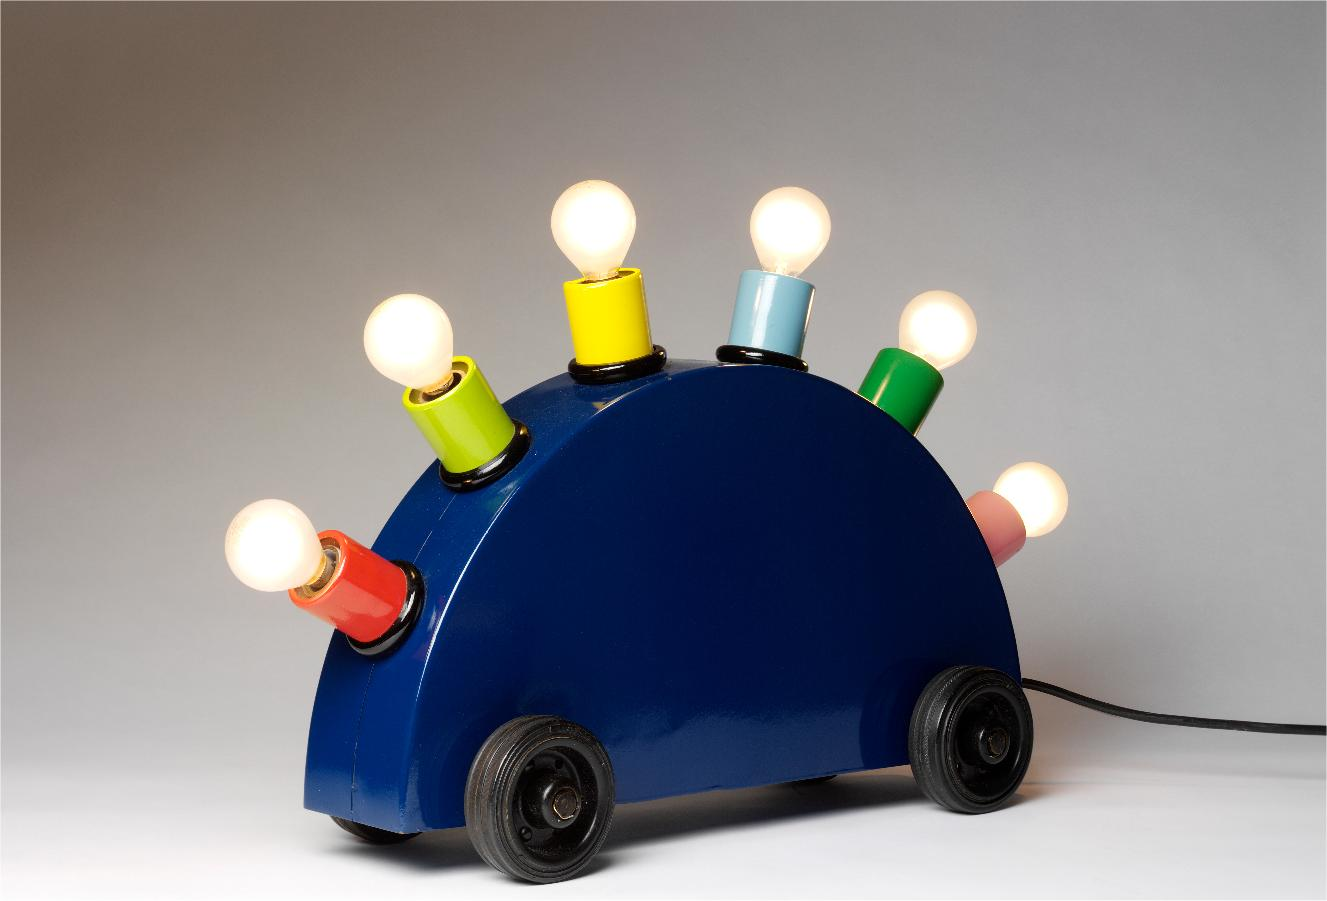 Lampe de table Super par Martine Bedin pour Memphis Milano, 1981